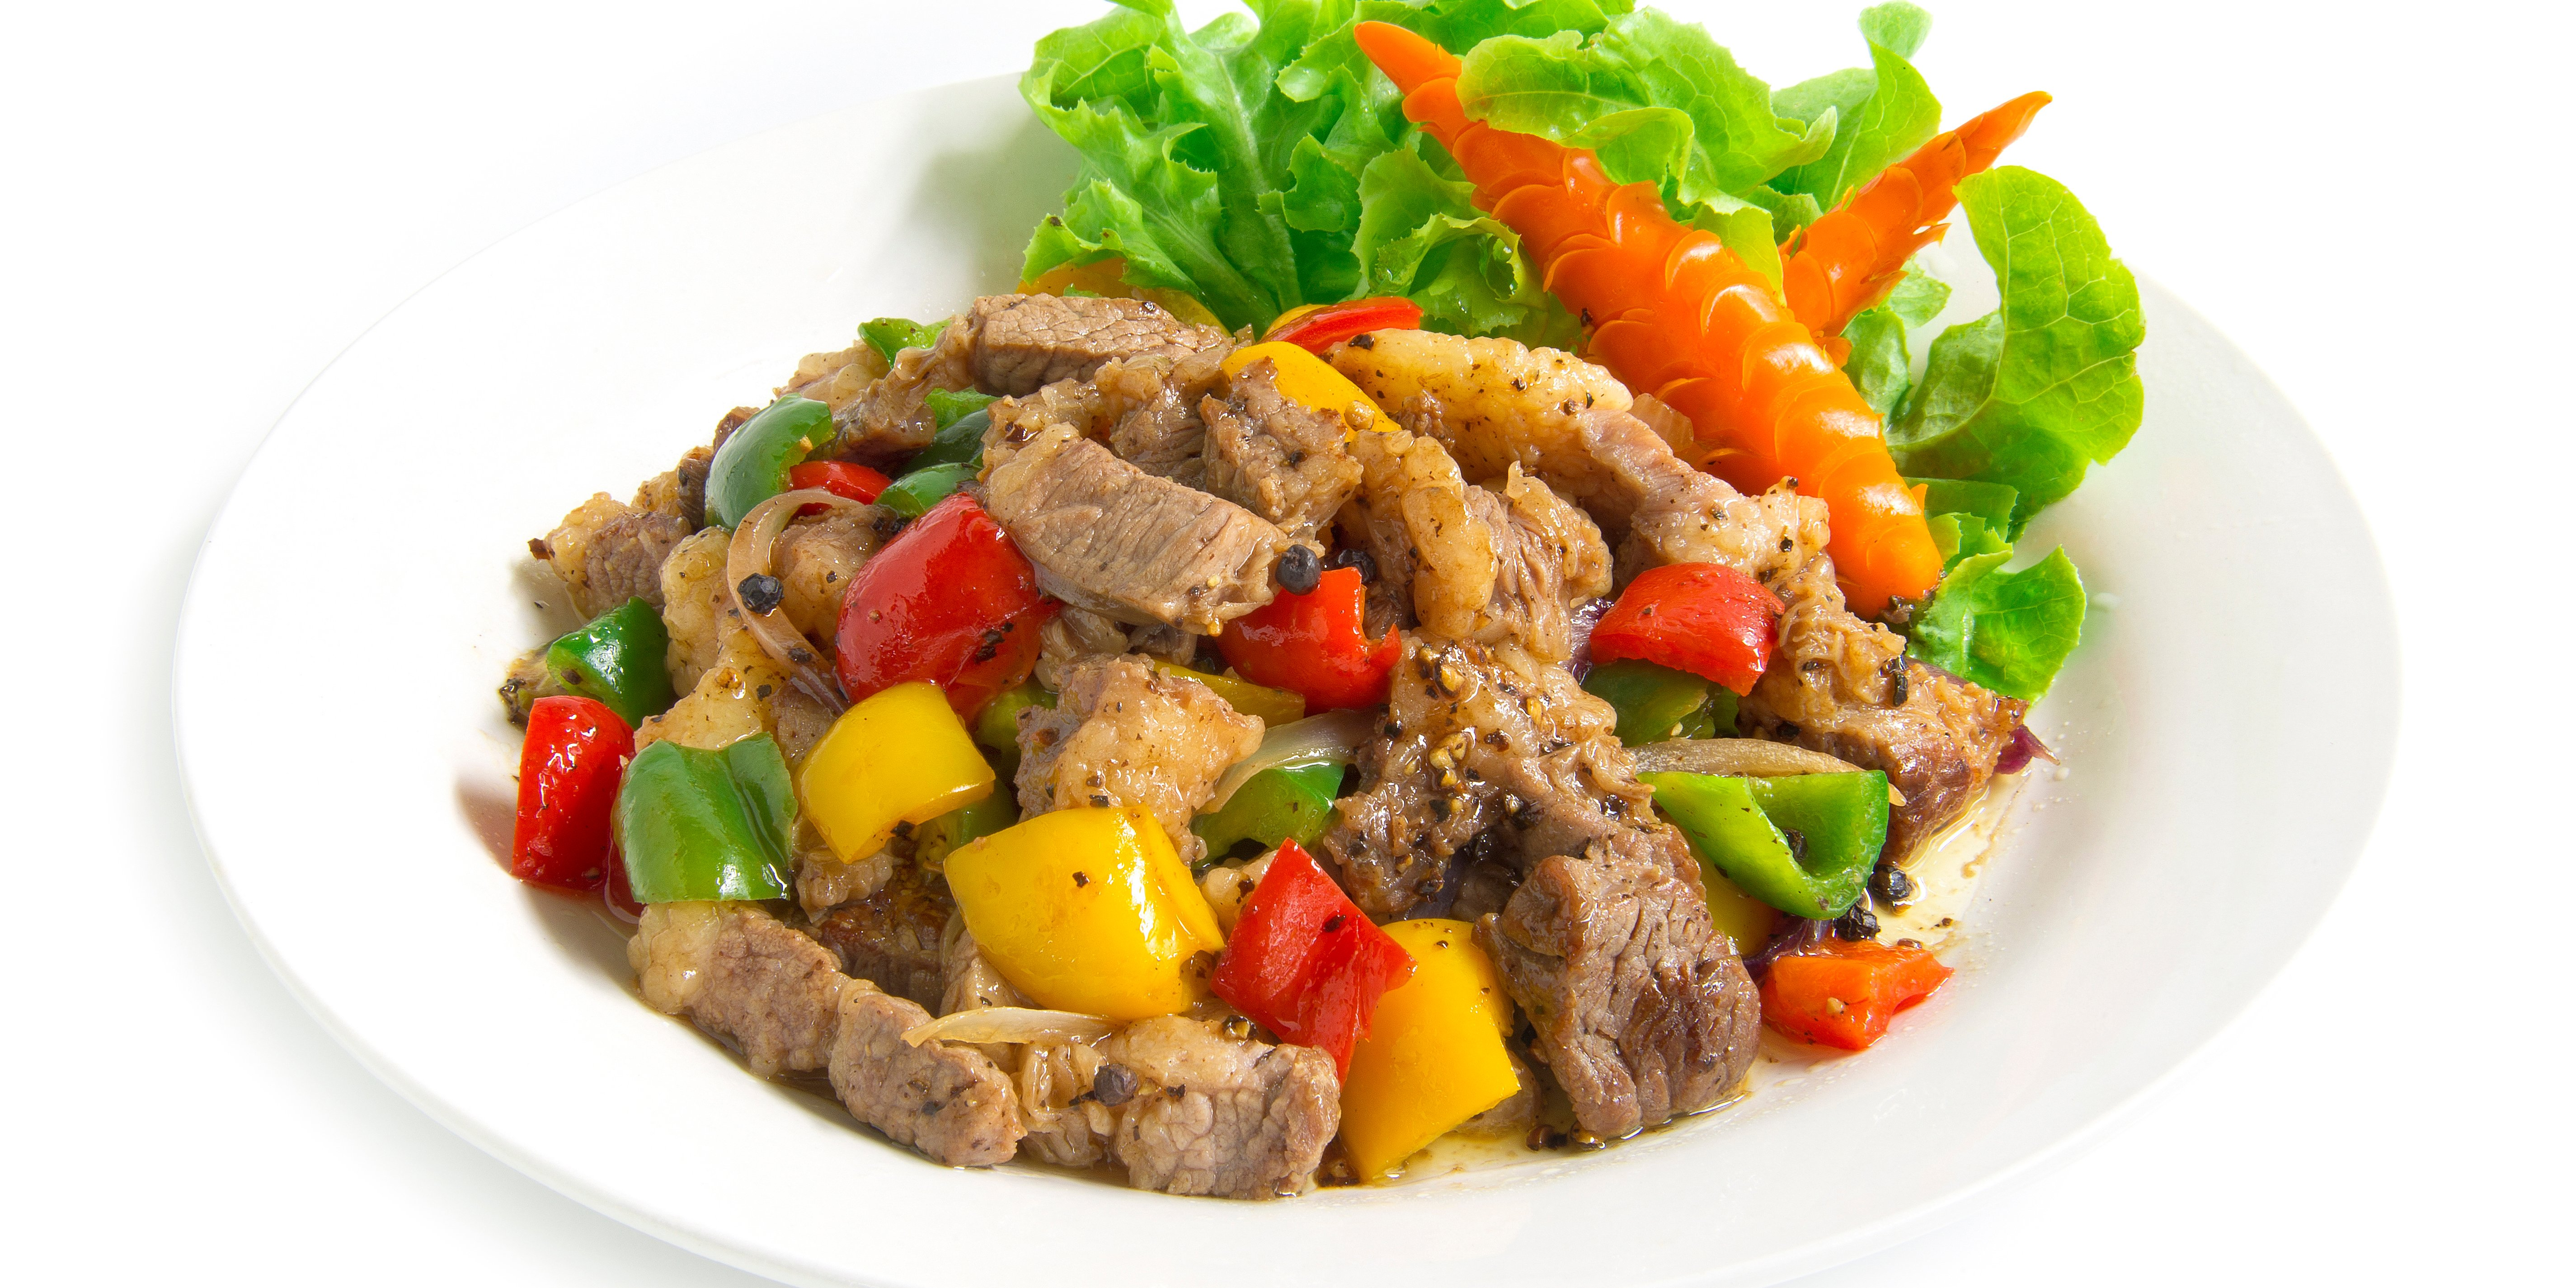 steak bowl with peppers and lettuce